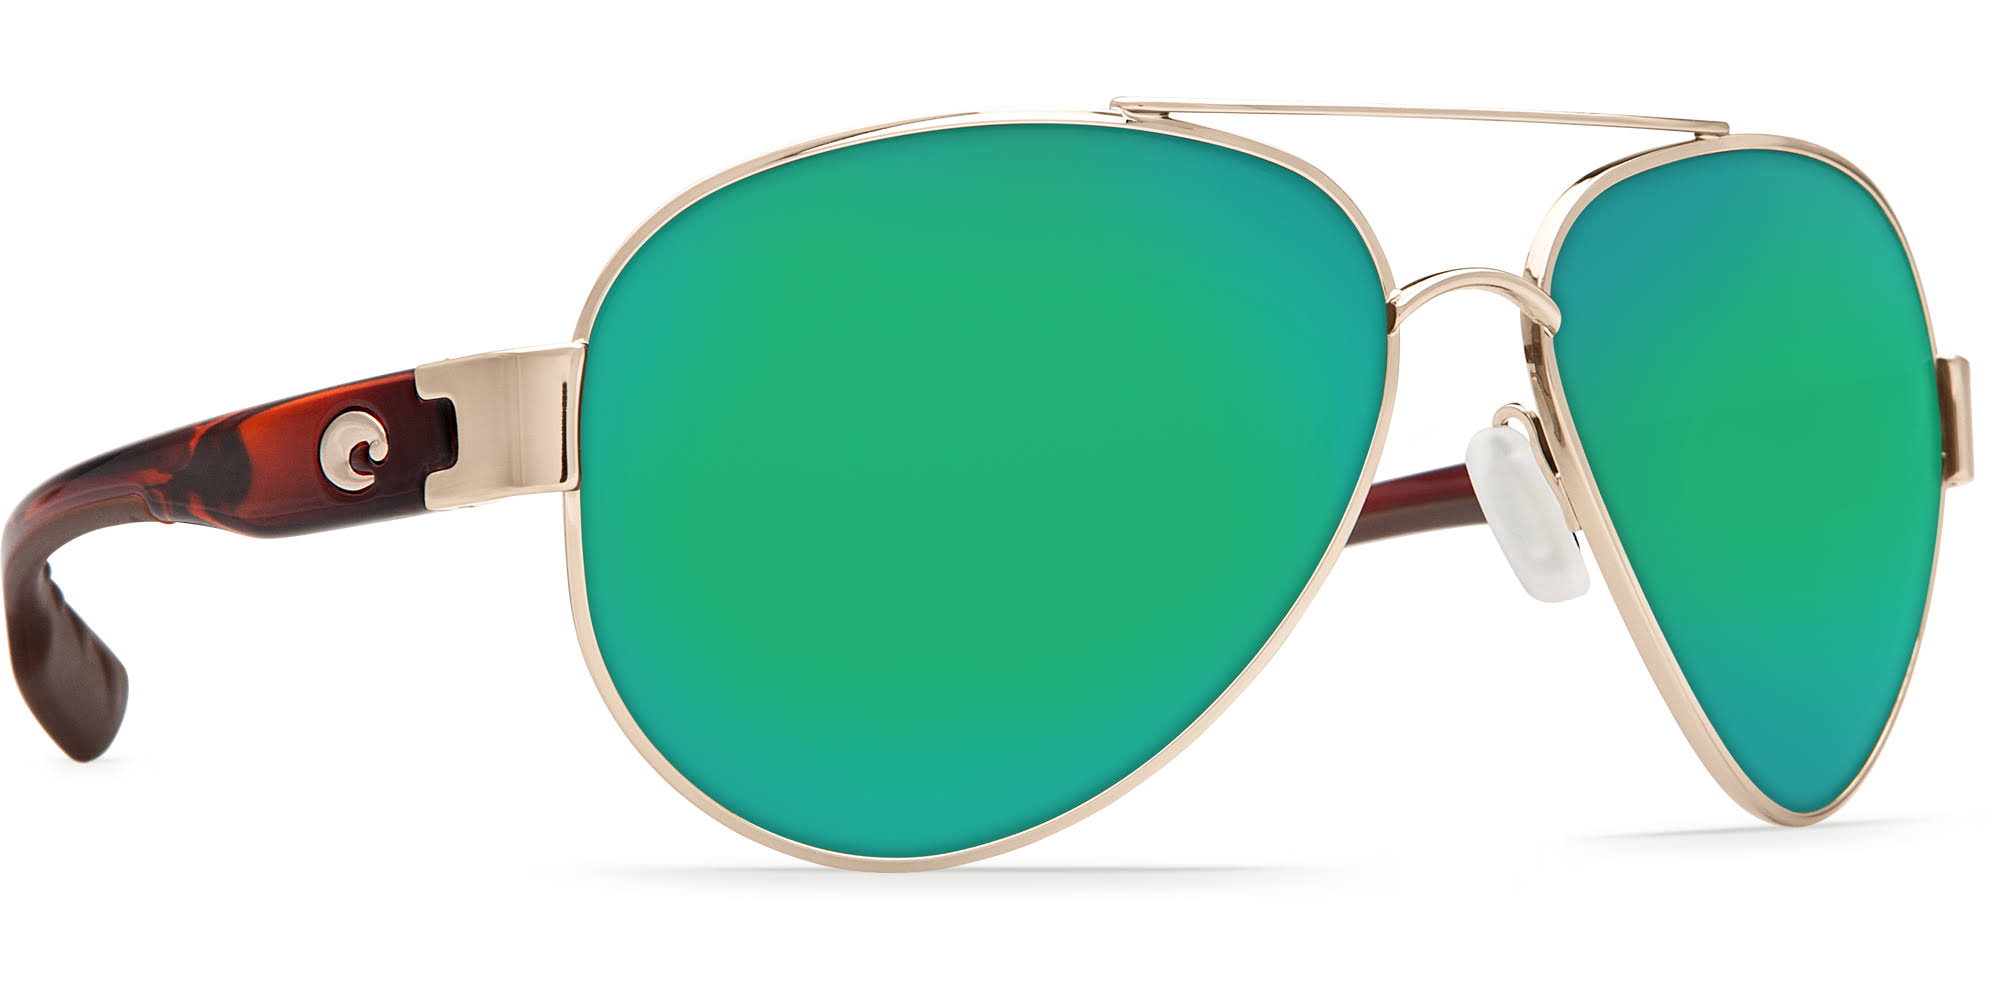 Costa Del Mar South Point Sunglasses - Rose Gold and Green Mirror